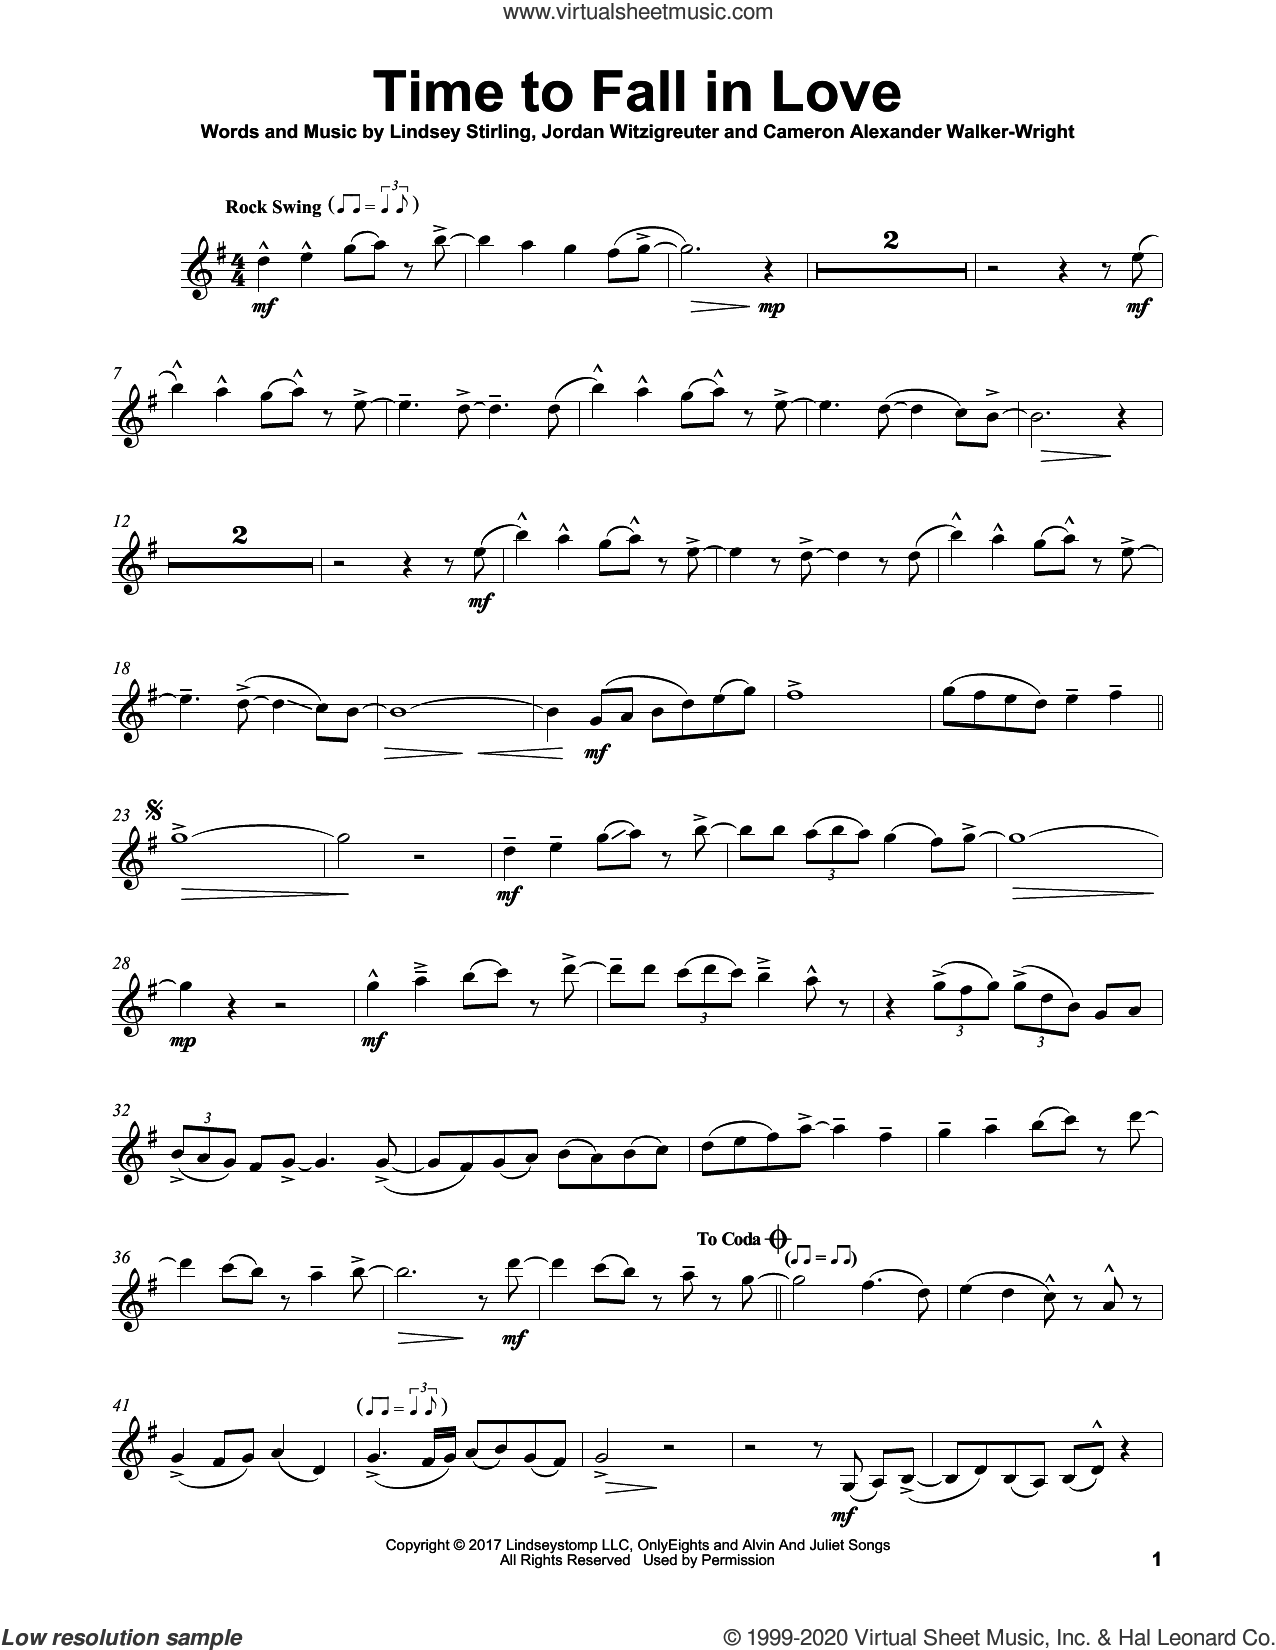 Time To Fall In Love sheet music for violin solo by Lindsey Stirling, Cameron Walker-Wright and Jordan Witzigreuter, intermediate skill level